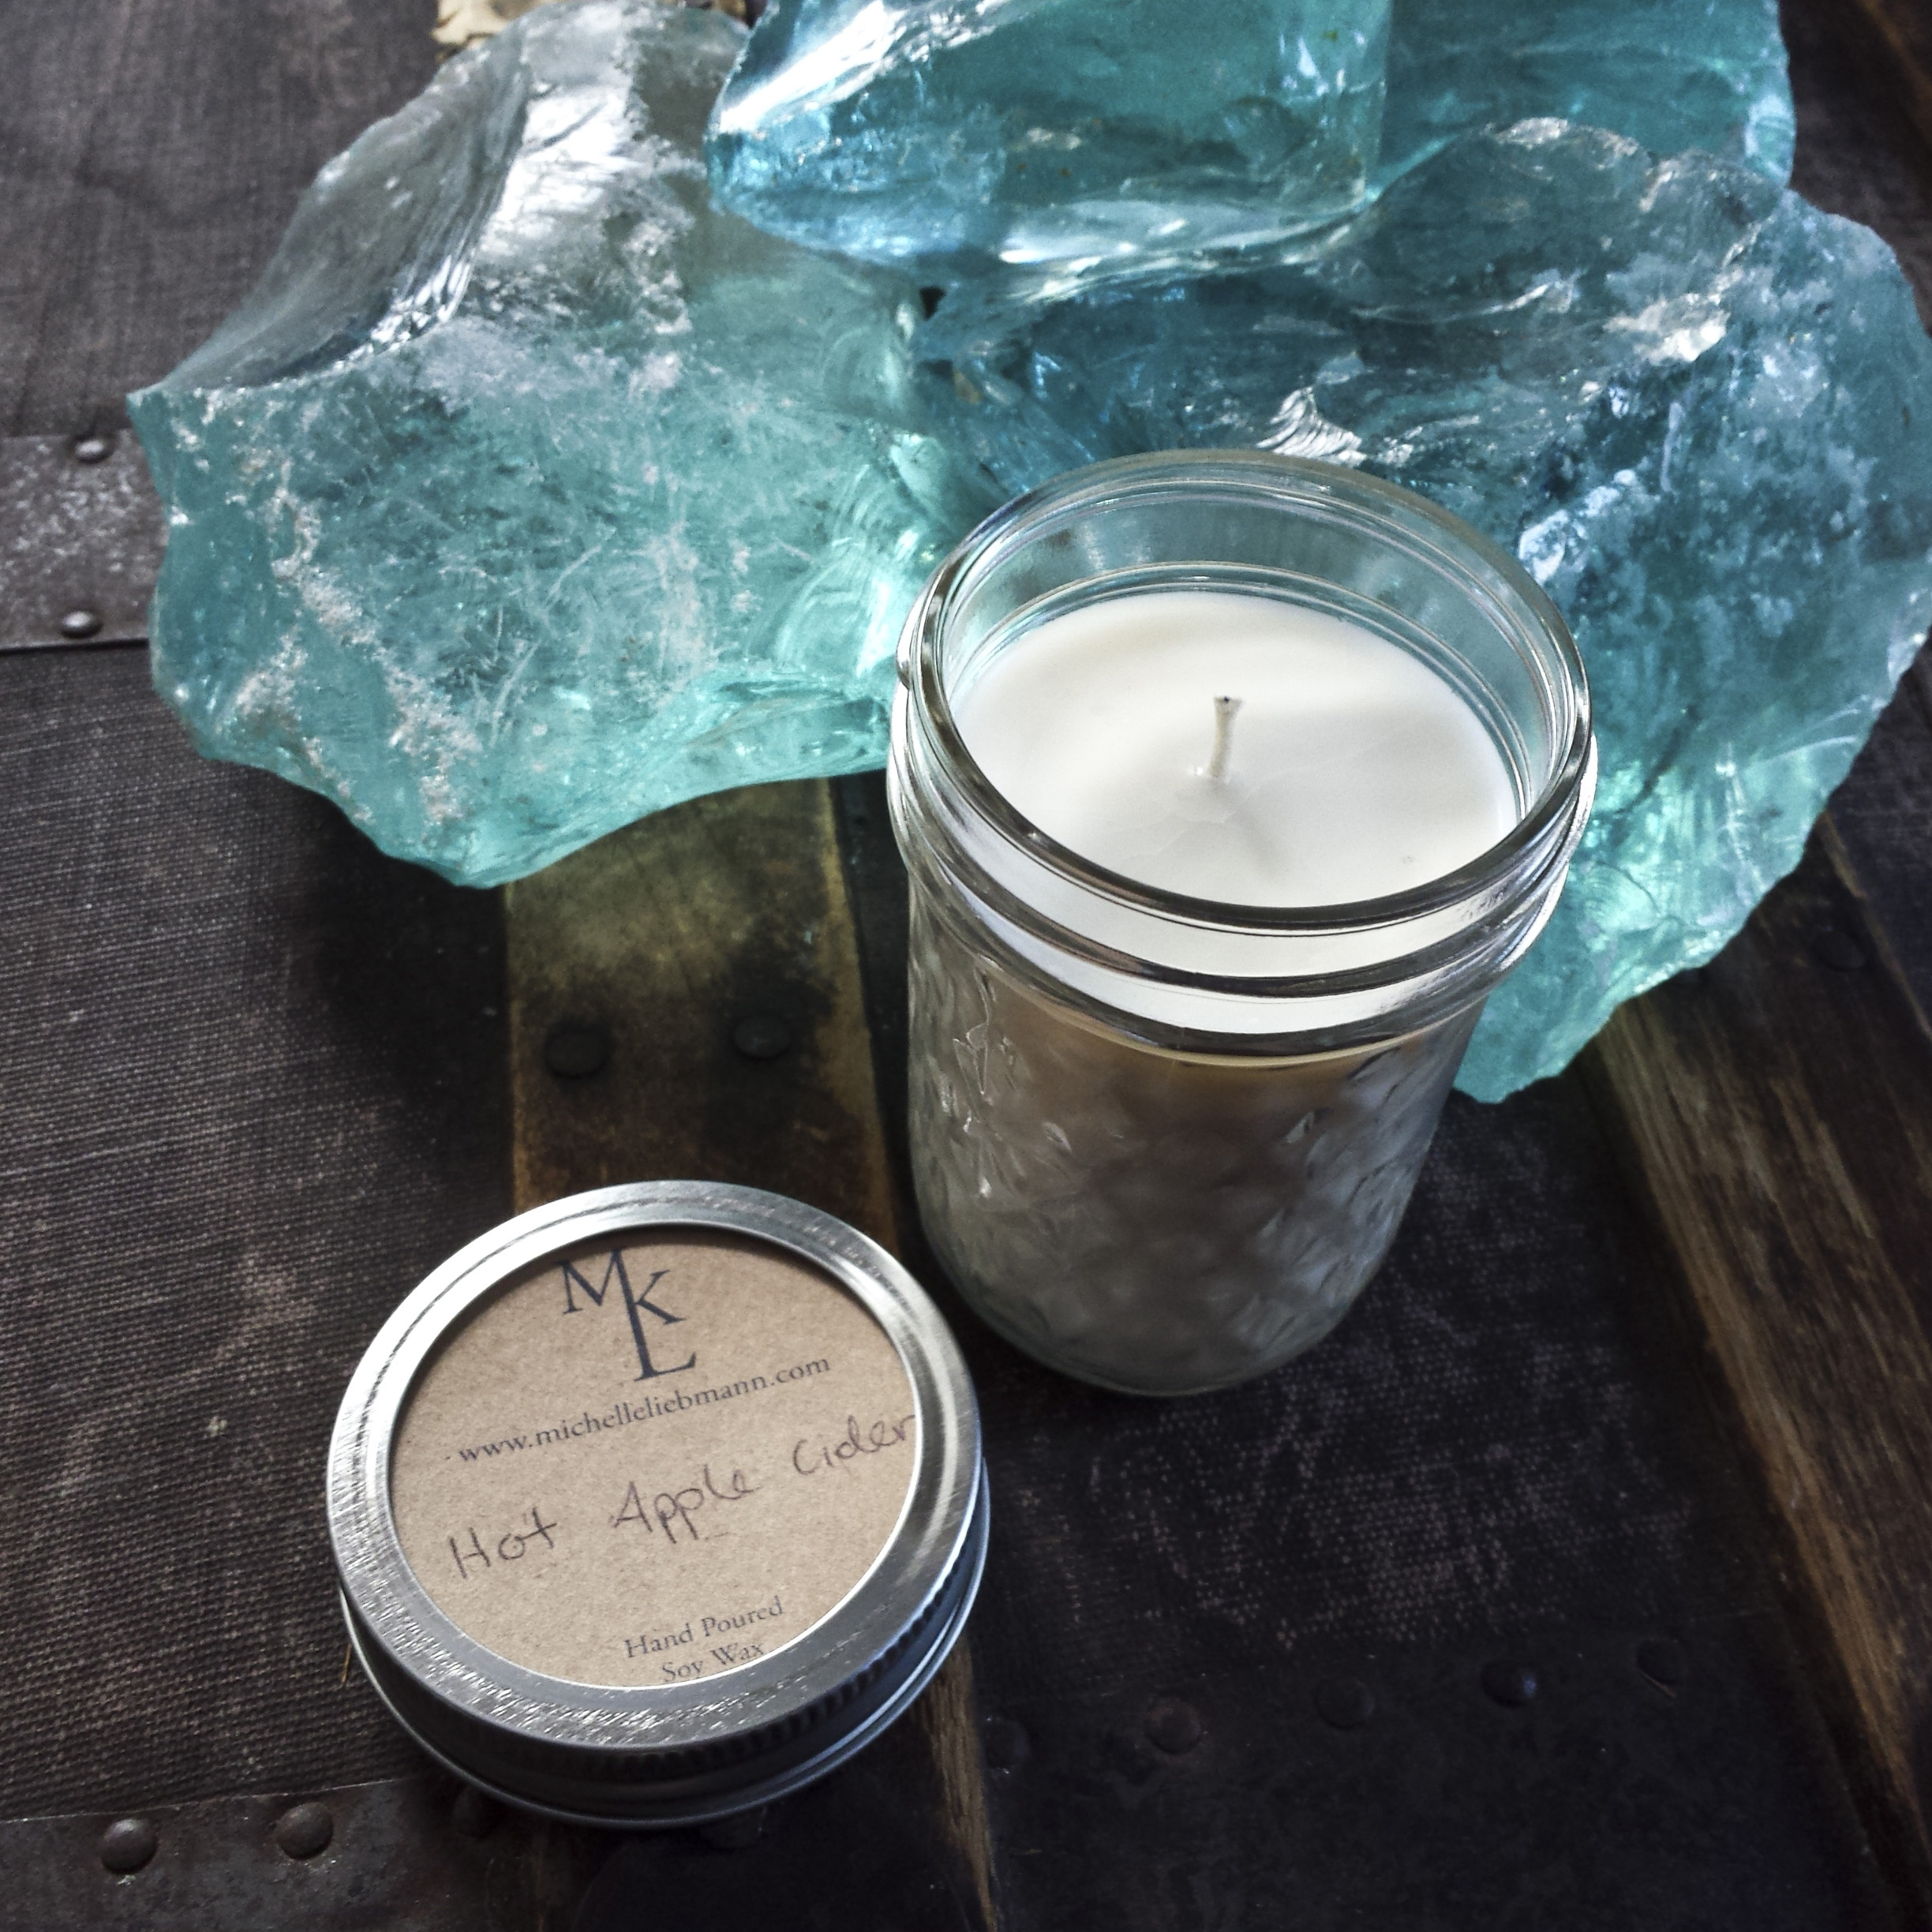 Hand Poured Natural Soy Wax Candle – Hot Apple Cider – $11